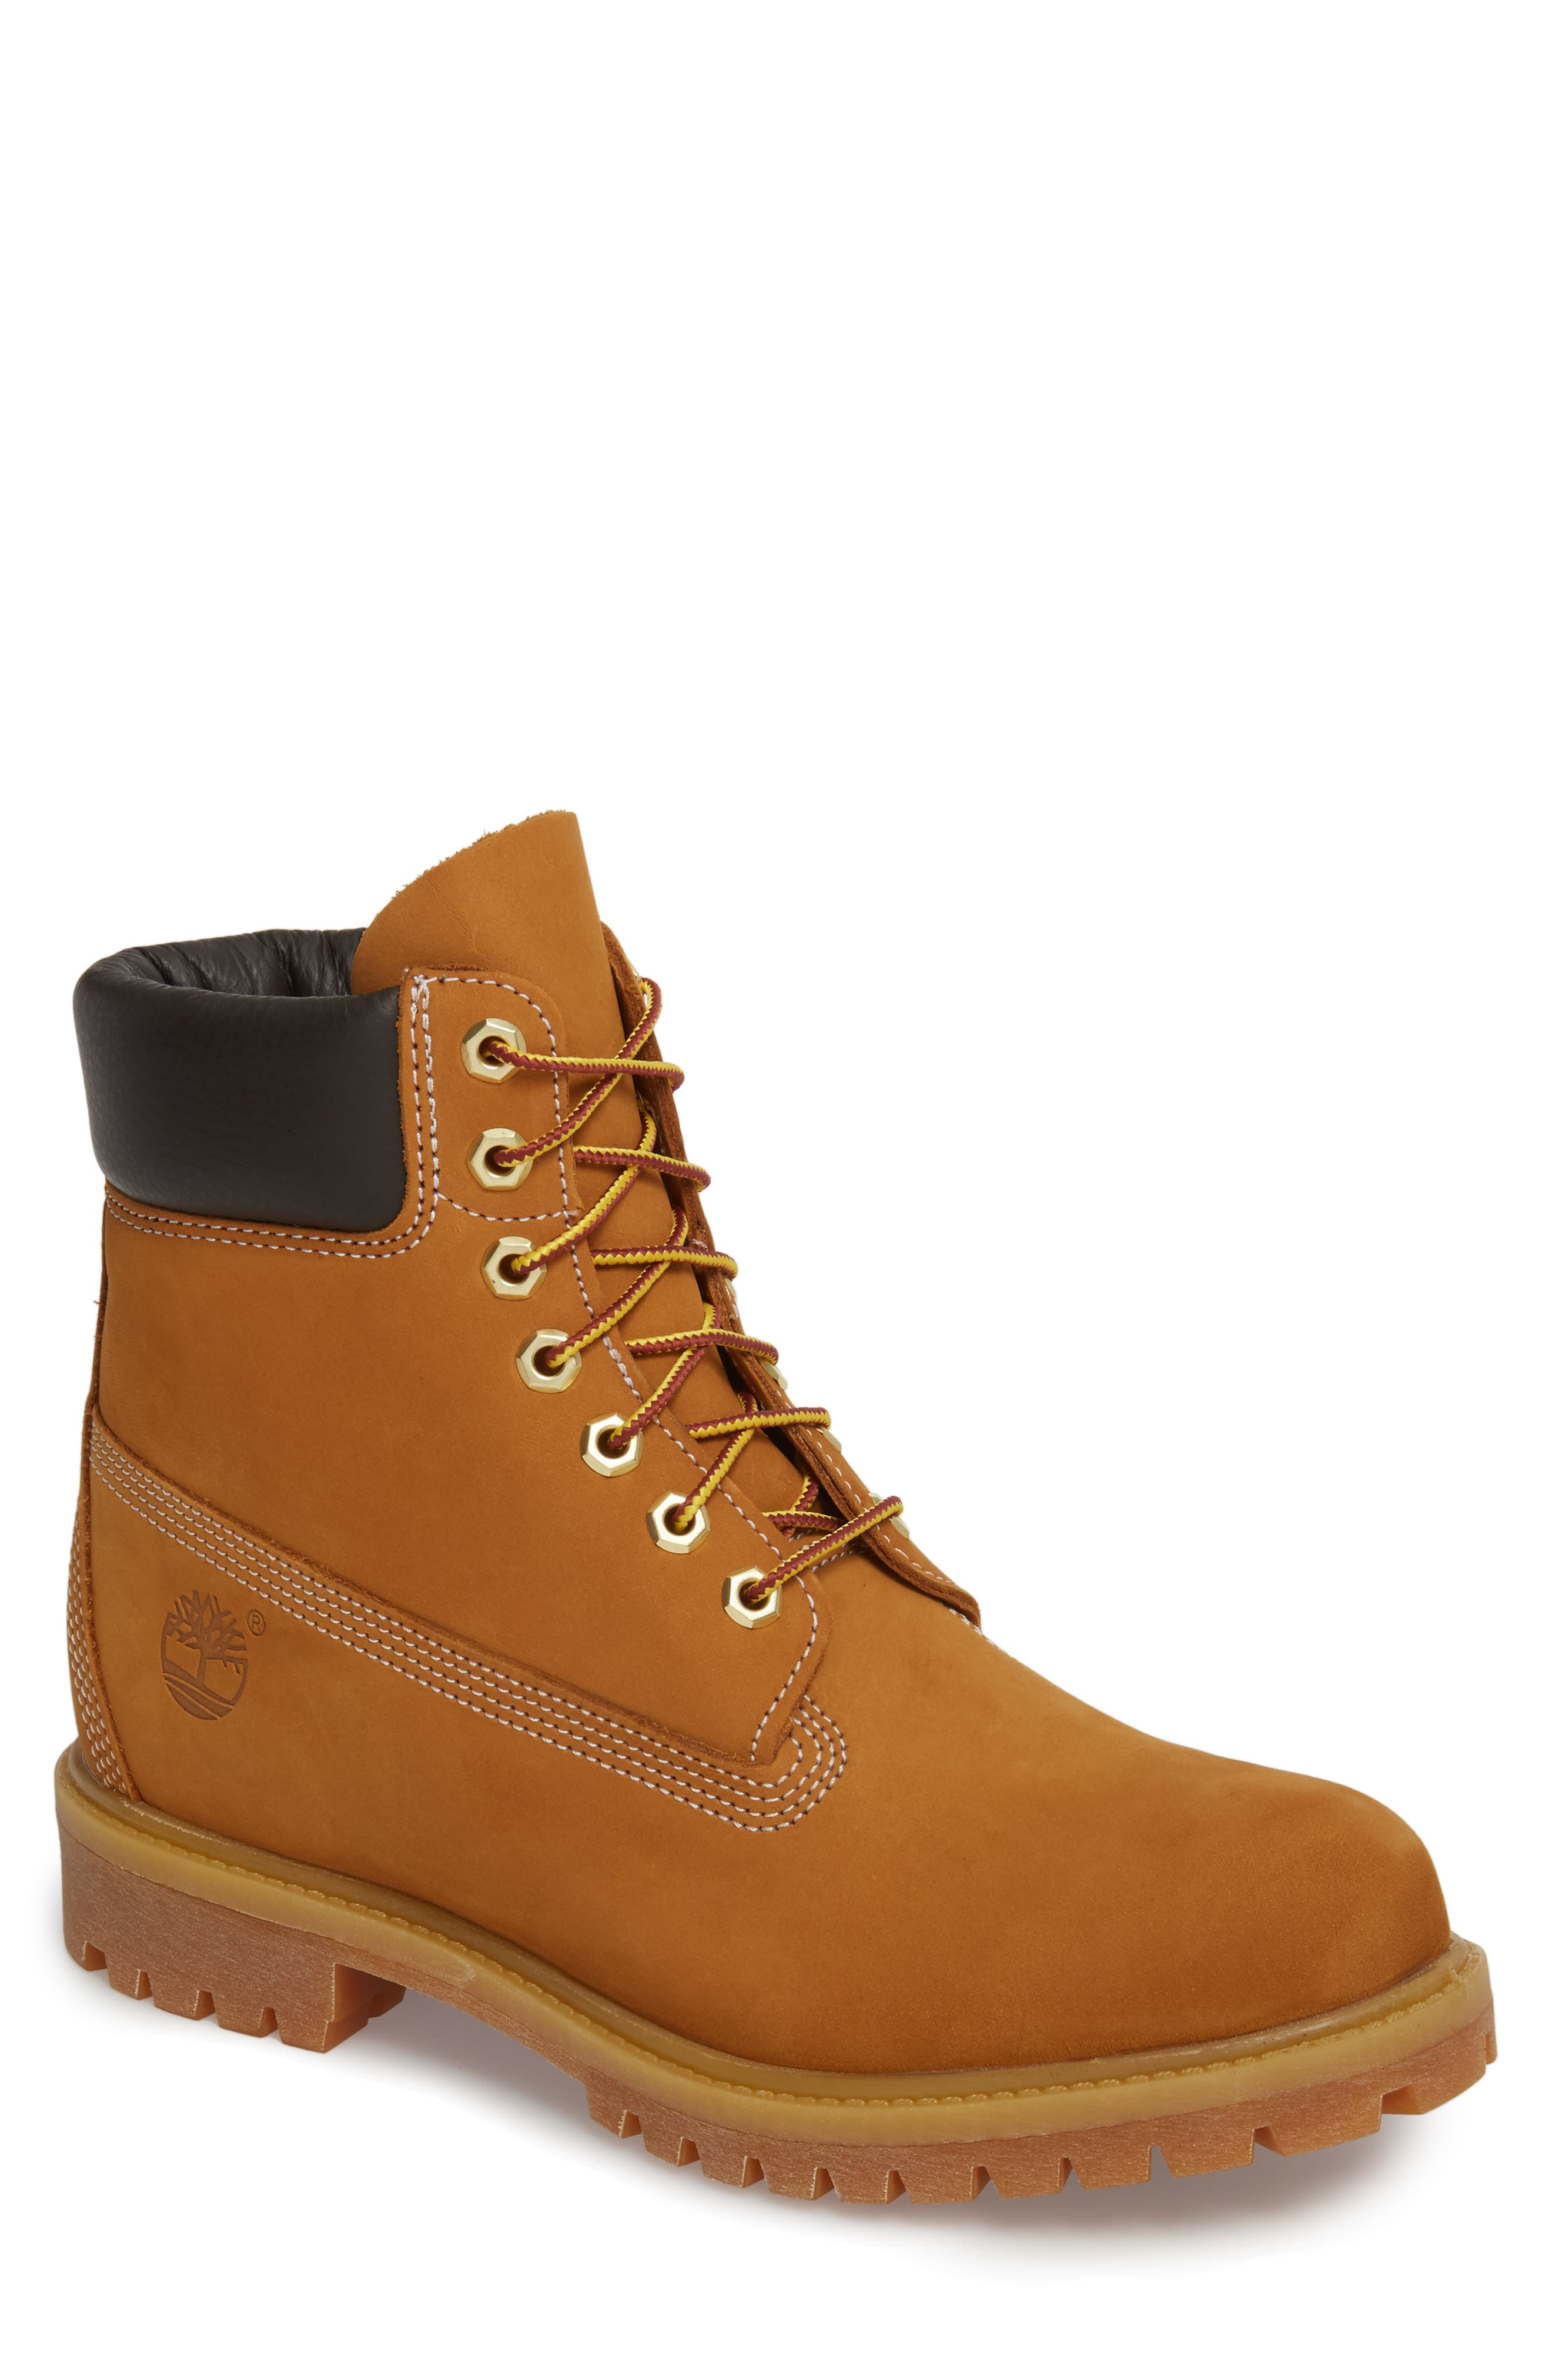 ,                             Six Inch Classic Waterproof Boots Series - Premium Waterproof Boot,                             Main thumbnail 1, color,                             WHEAT